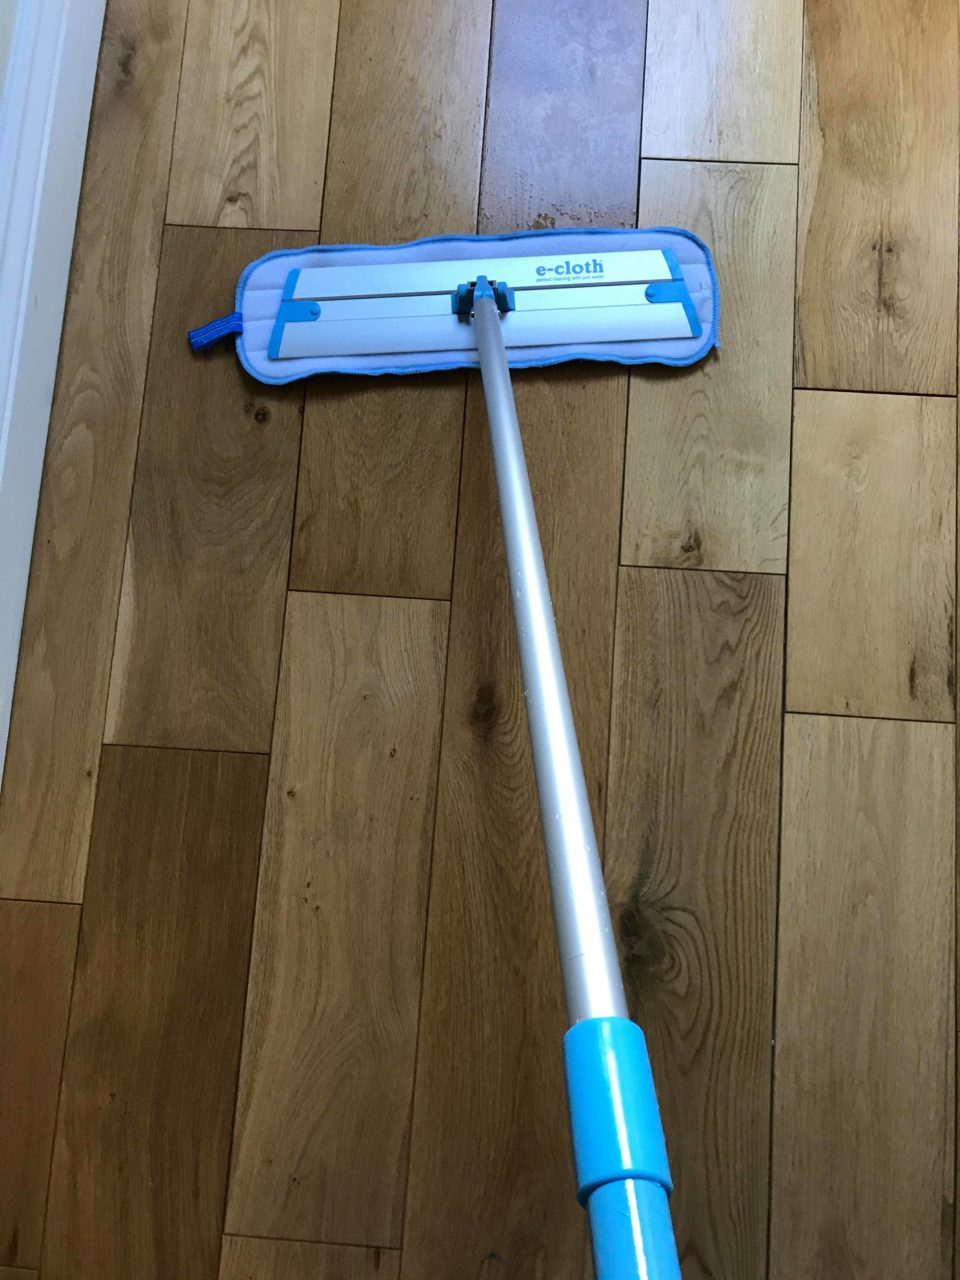 mopping the wooden floor with the e-cloth mop